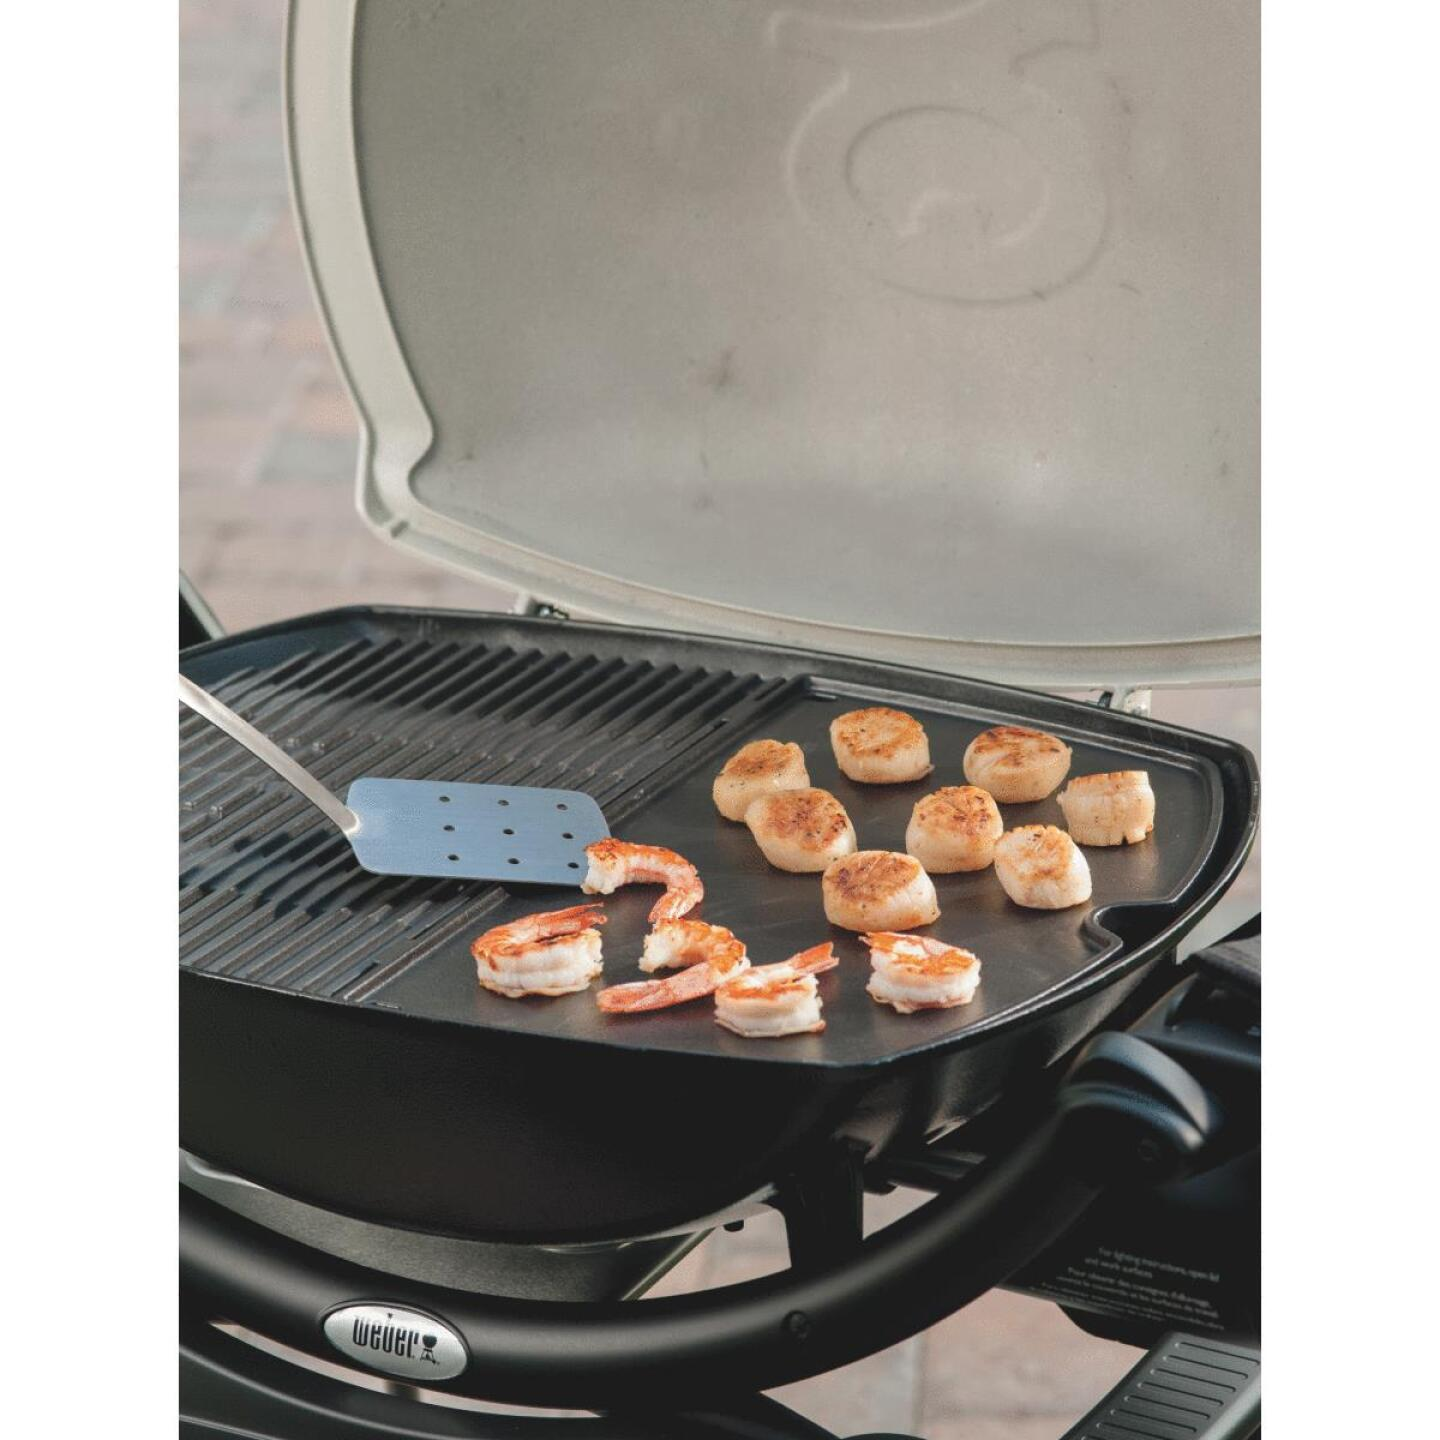 Weber Q 14.1 In. W. x 18.8 In L. Porcelain Enameled Cast Iron 200/2000 Series Gas Grill Griddle Image 3